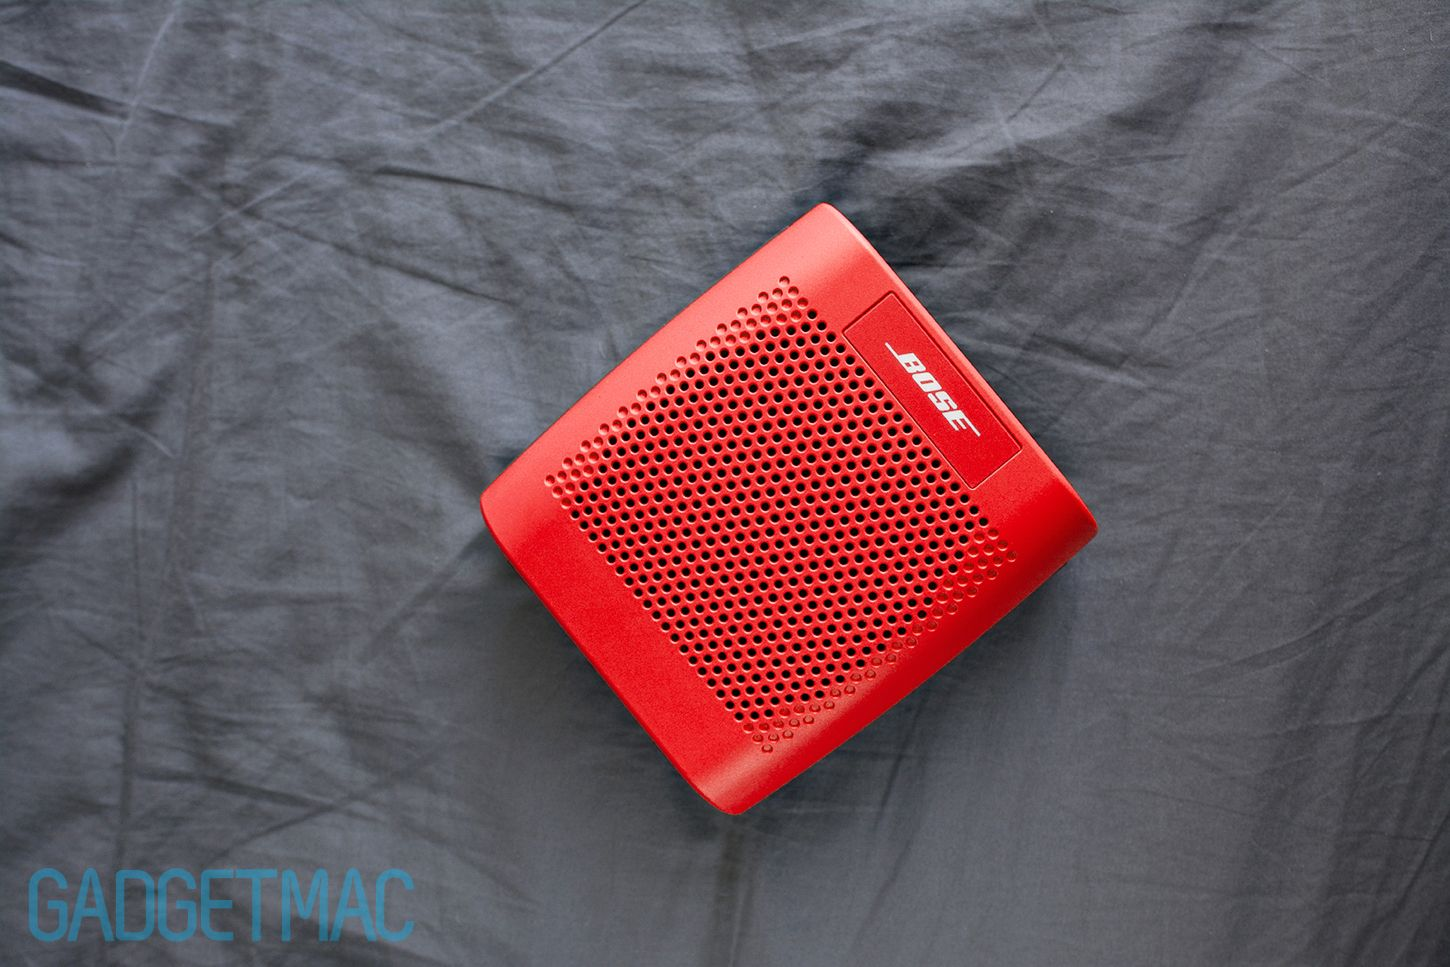 Bose SoundLink Color Review - Gadget and Accessory Reviews - Gadgetmac